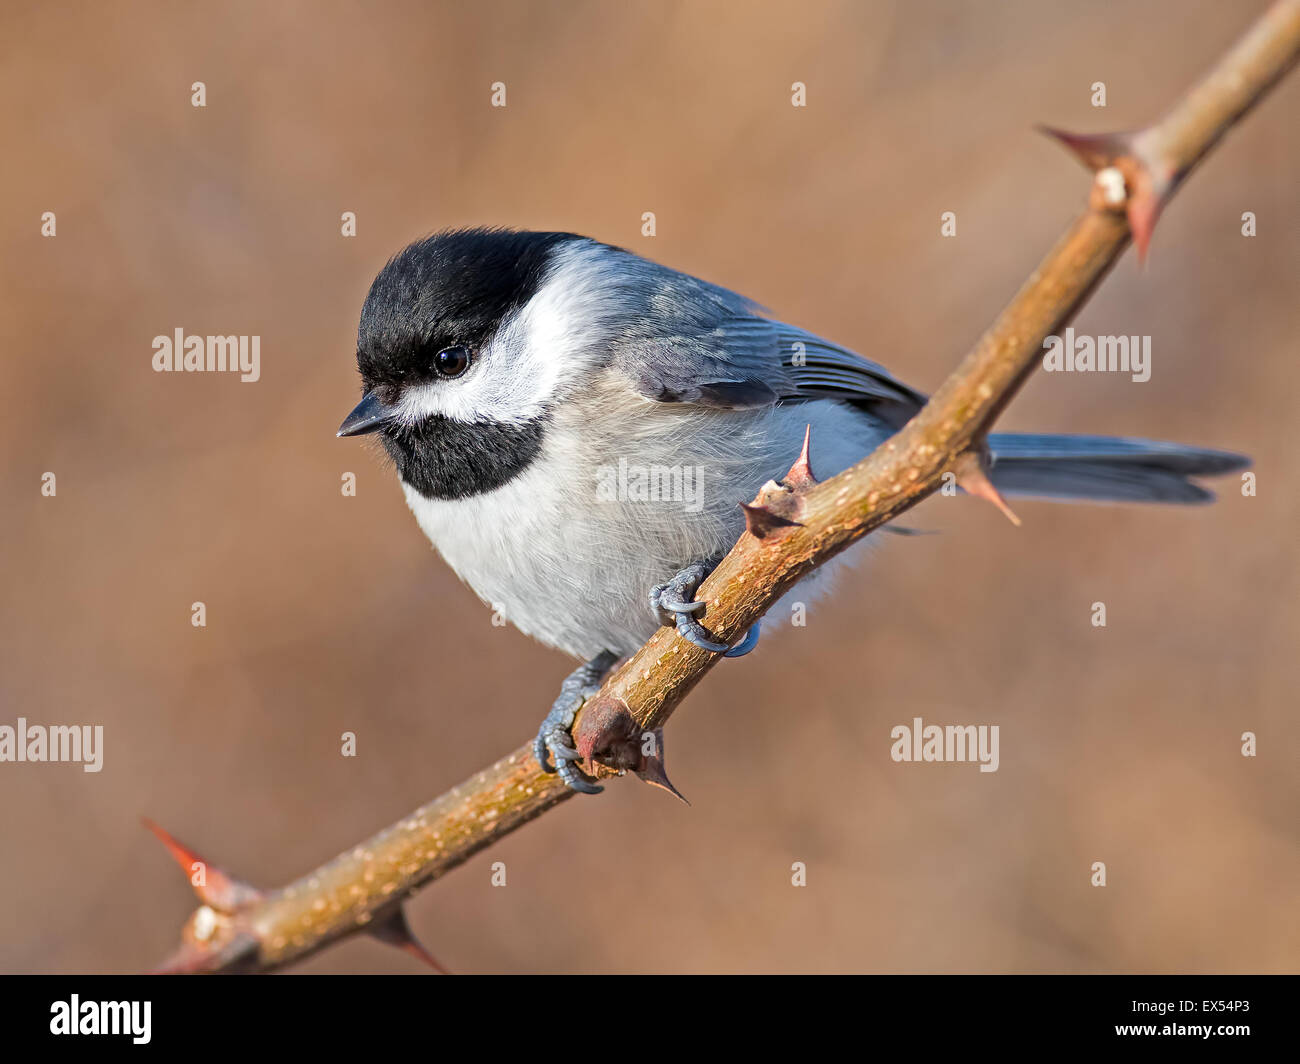 Carolina Chickadee on Branch - Stock Image